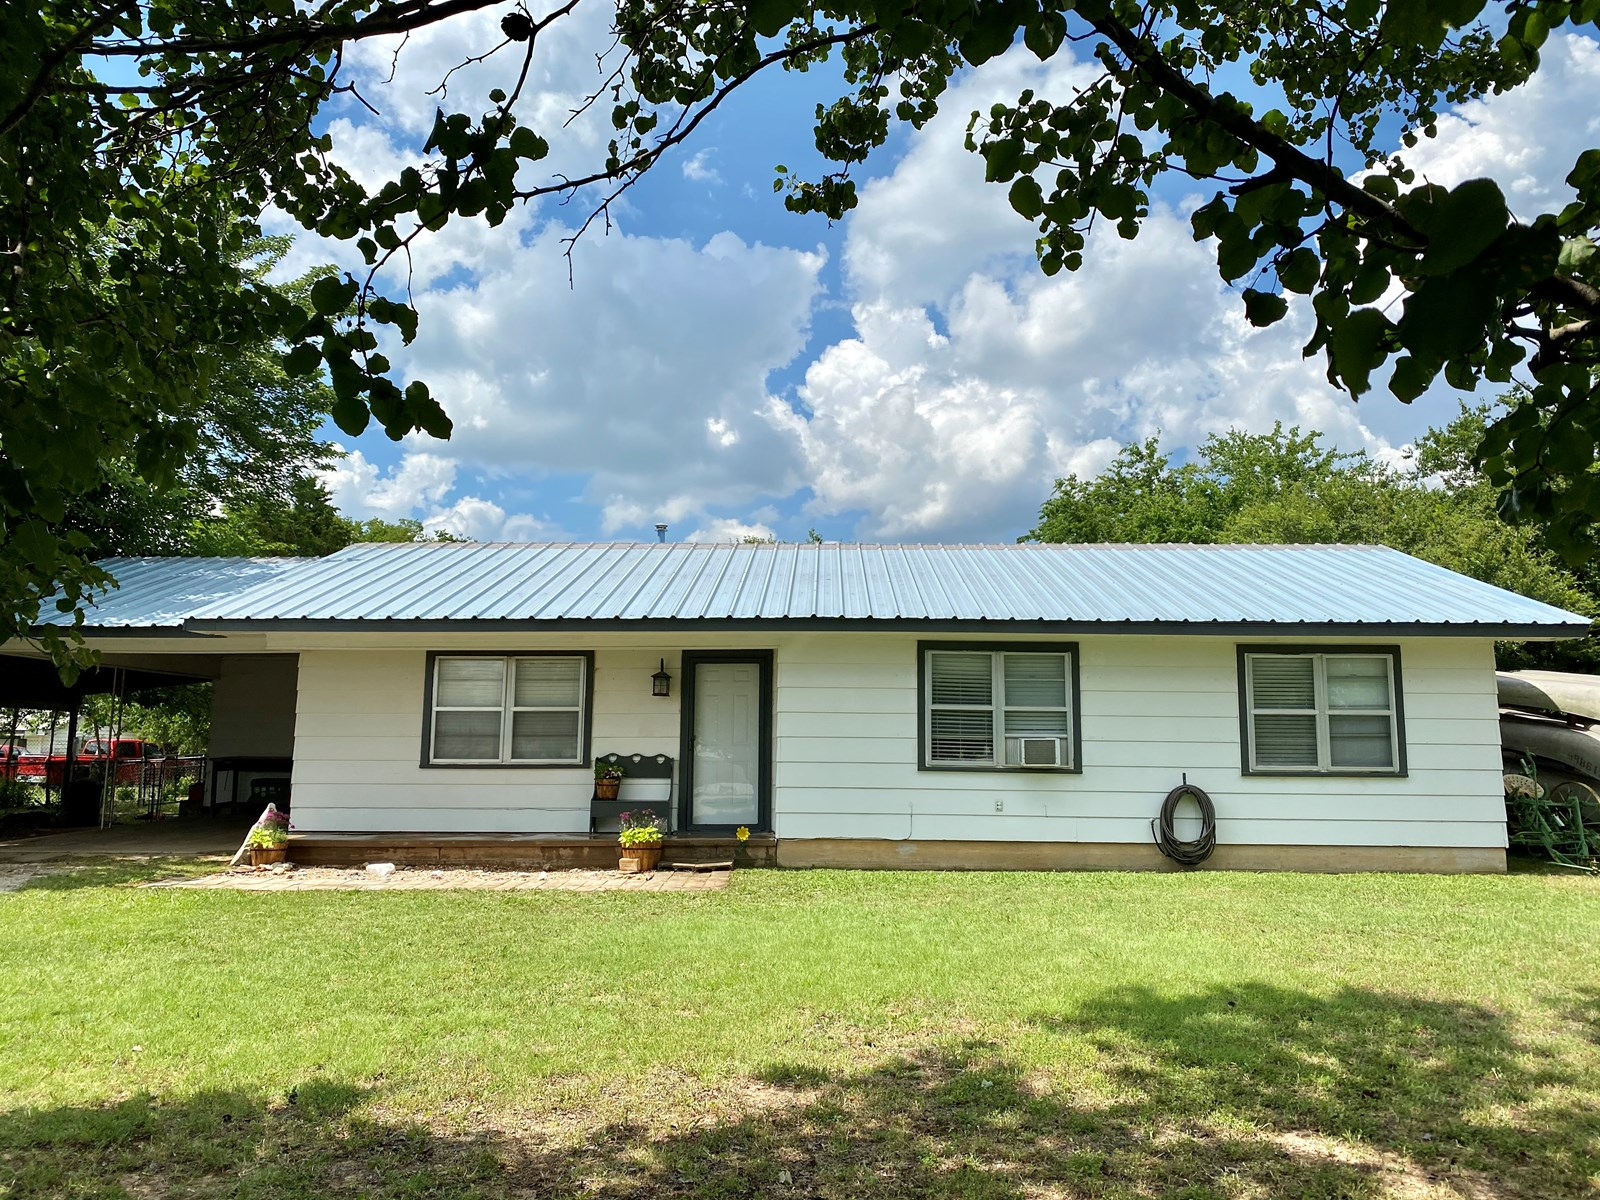 STARTER HOME FOR SALE IN MARIETTA, OK- CLOSE TO LAKES